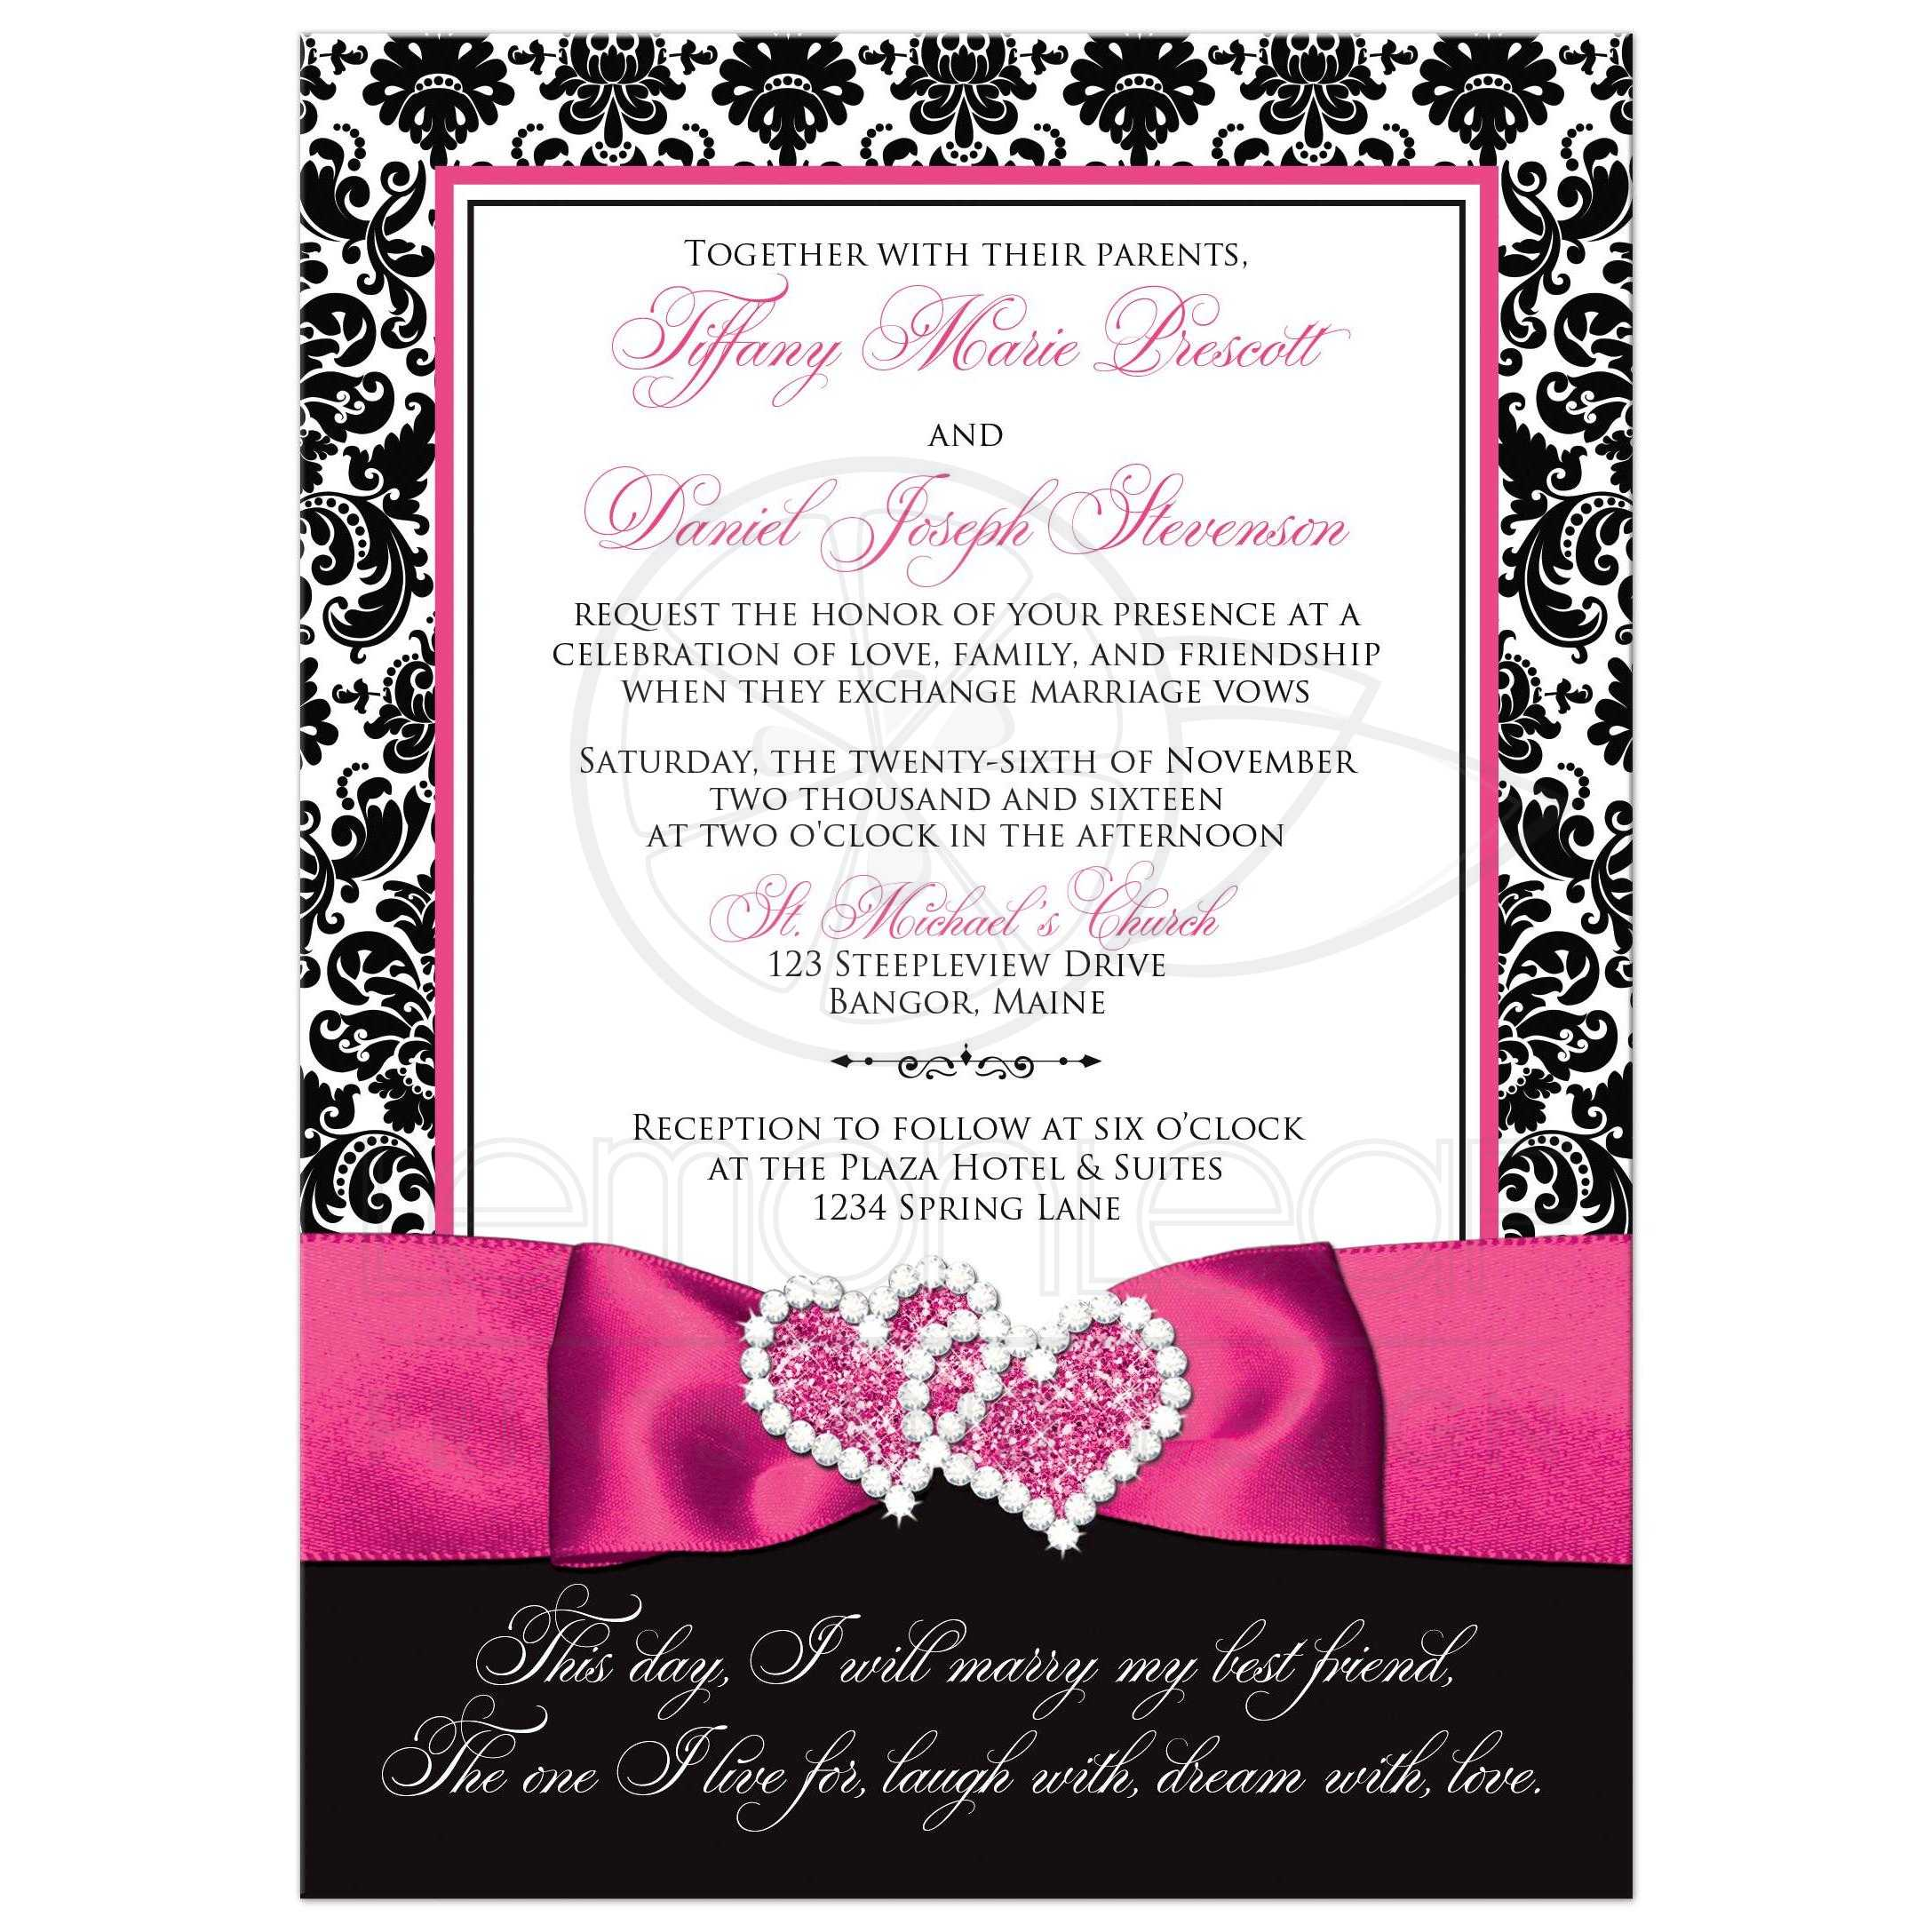 wedding invitation photo optional black and white damask